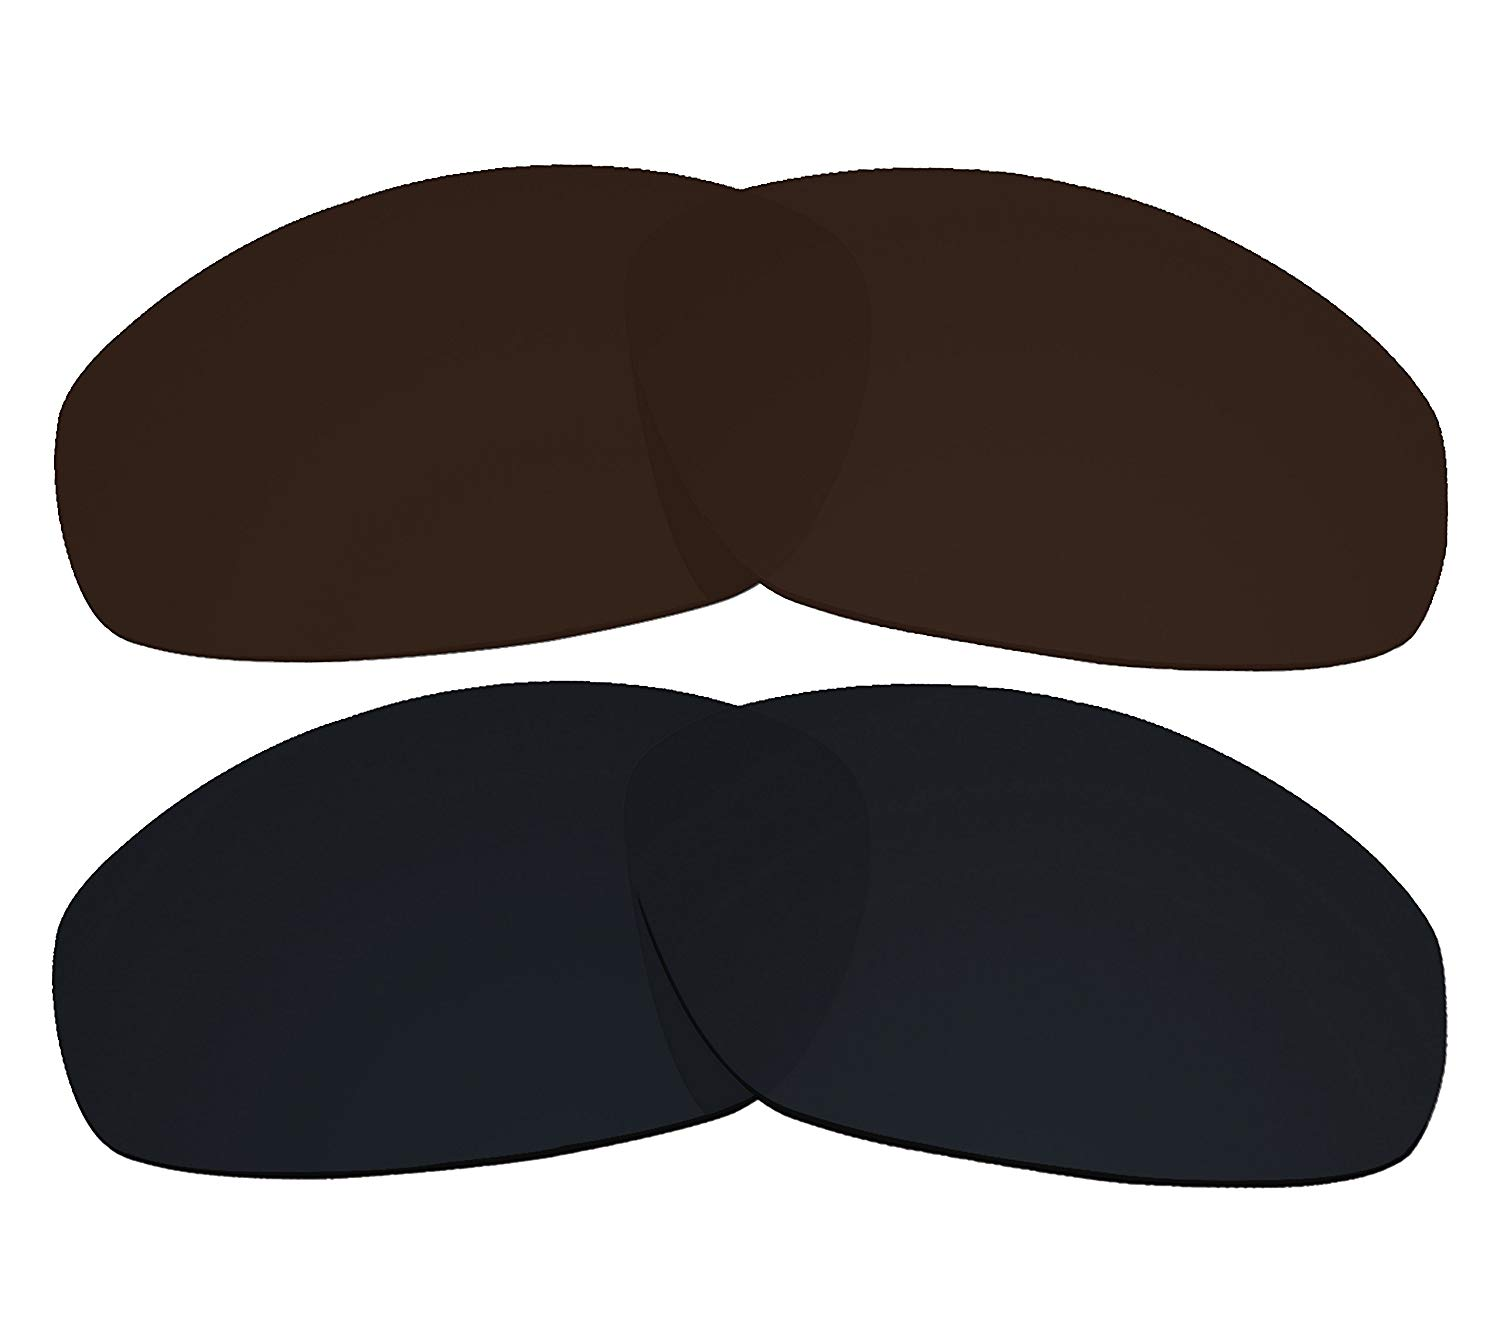 790db10c802 Get Quotations · 2 Pairs COLOR STAY LENSES 2.0mm Thickness Polarized  Replacement Lenses Black   Brown for Oakley